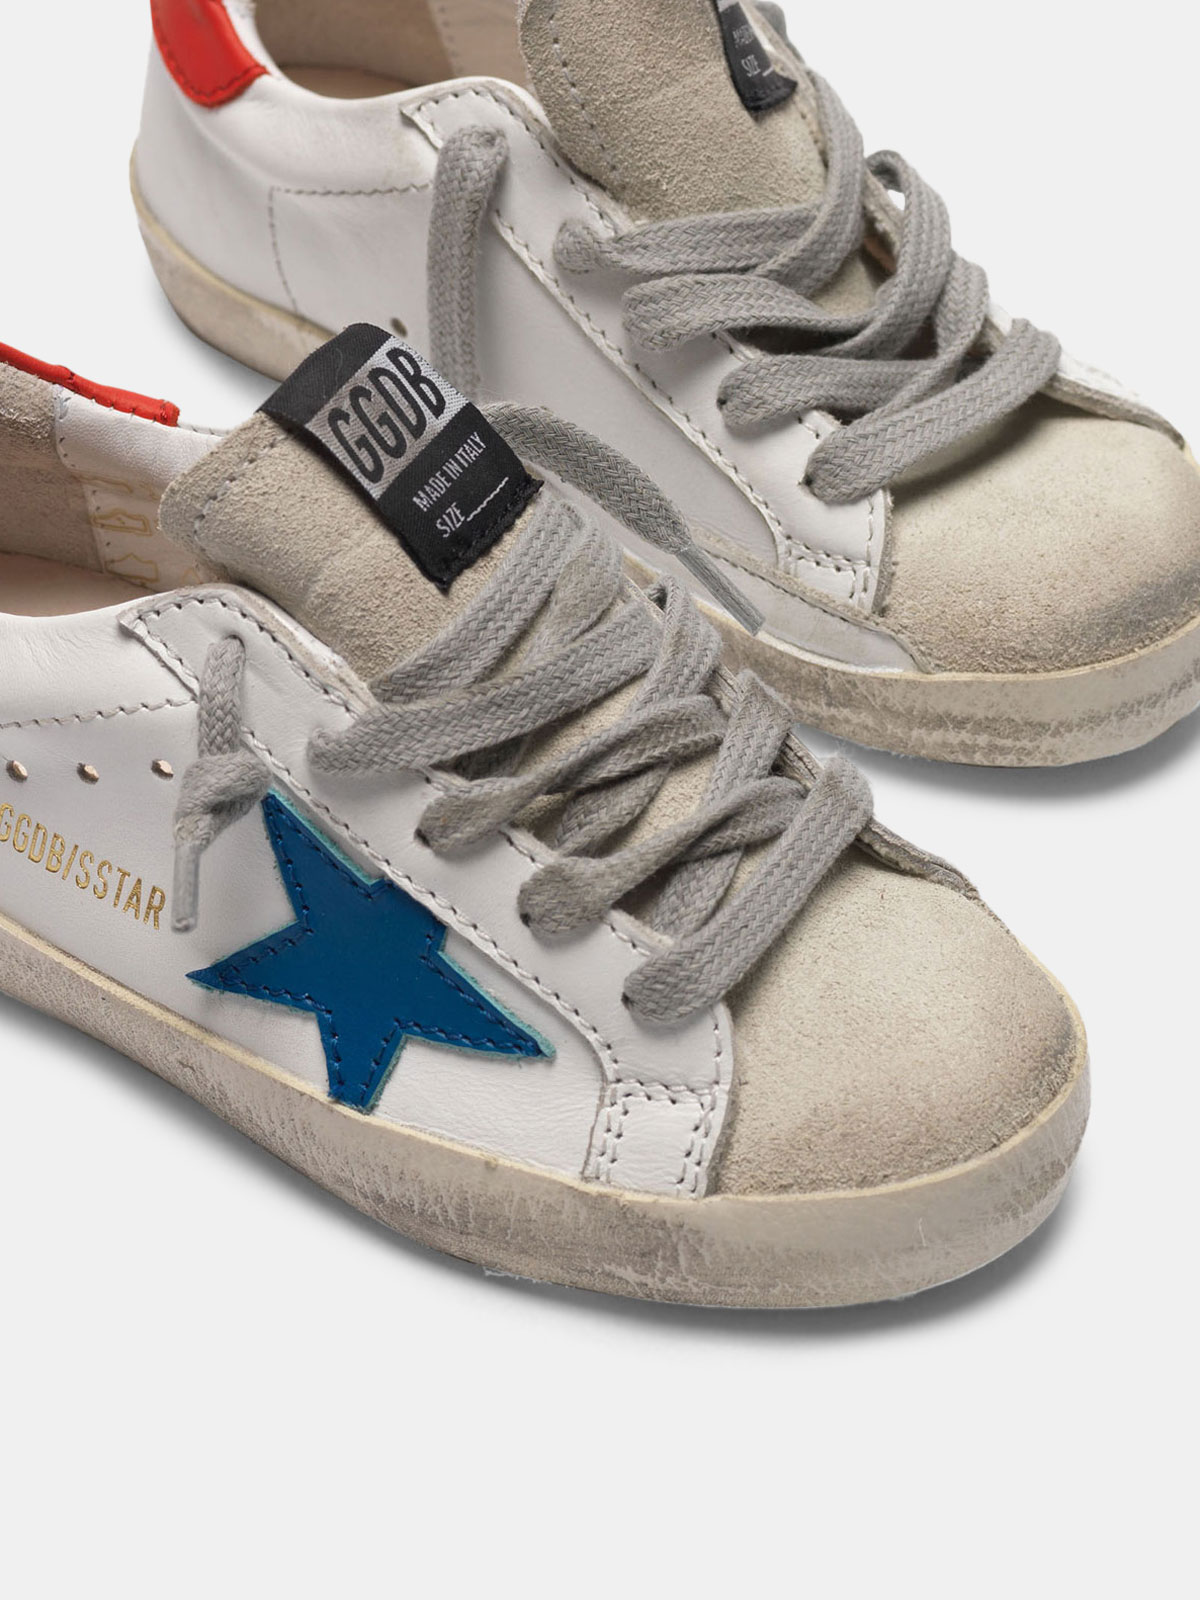 Golden Goose - Super-Star sneakers with blue star and red heel tab in